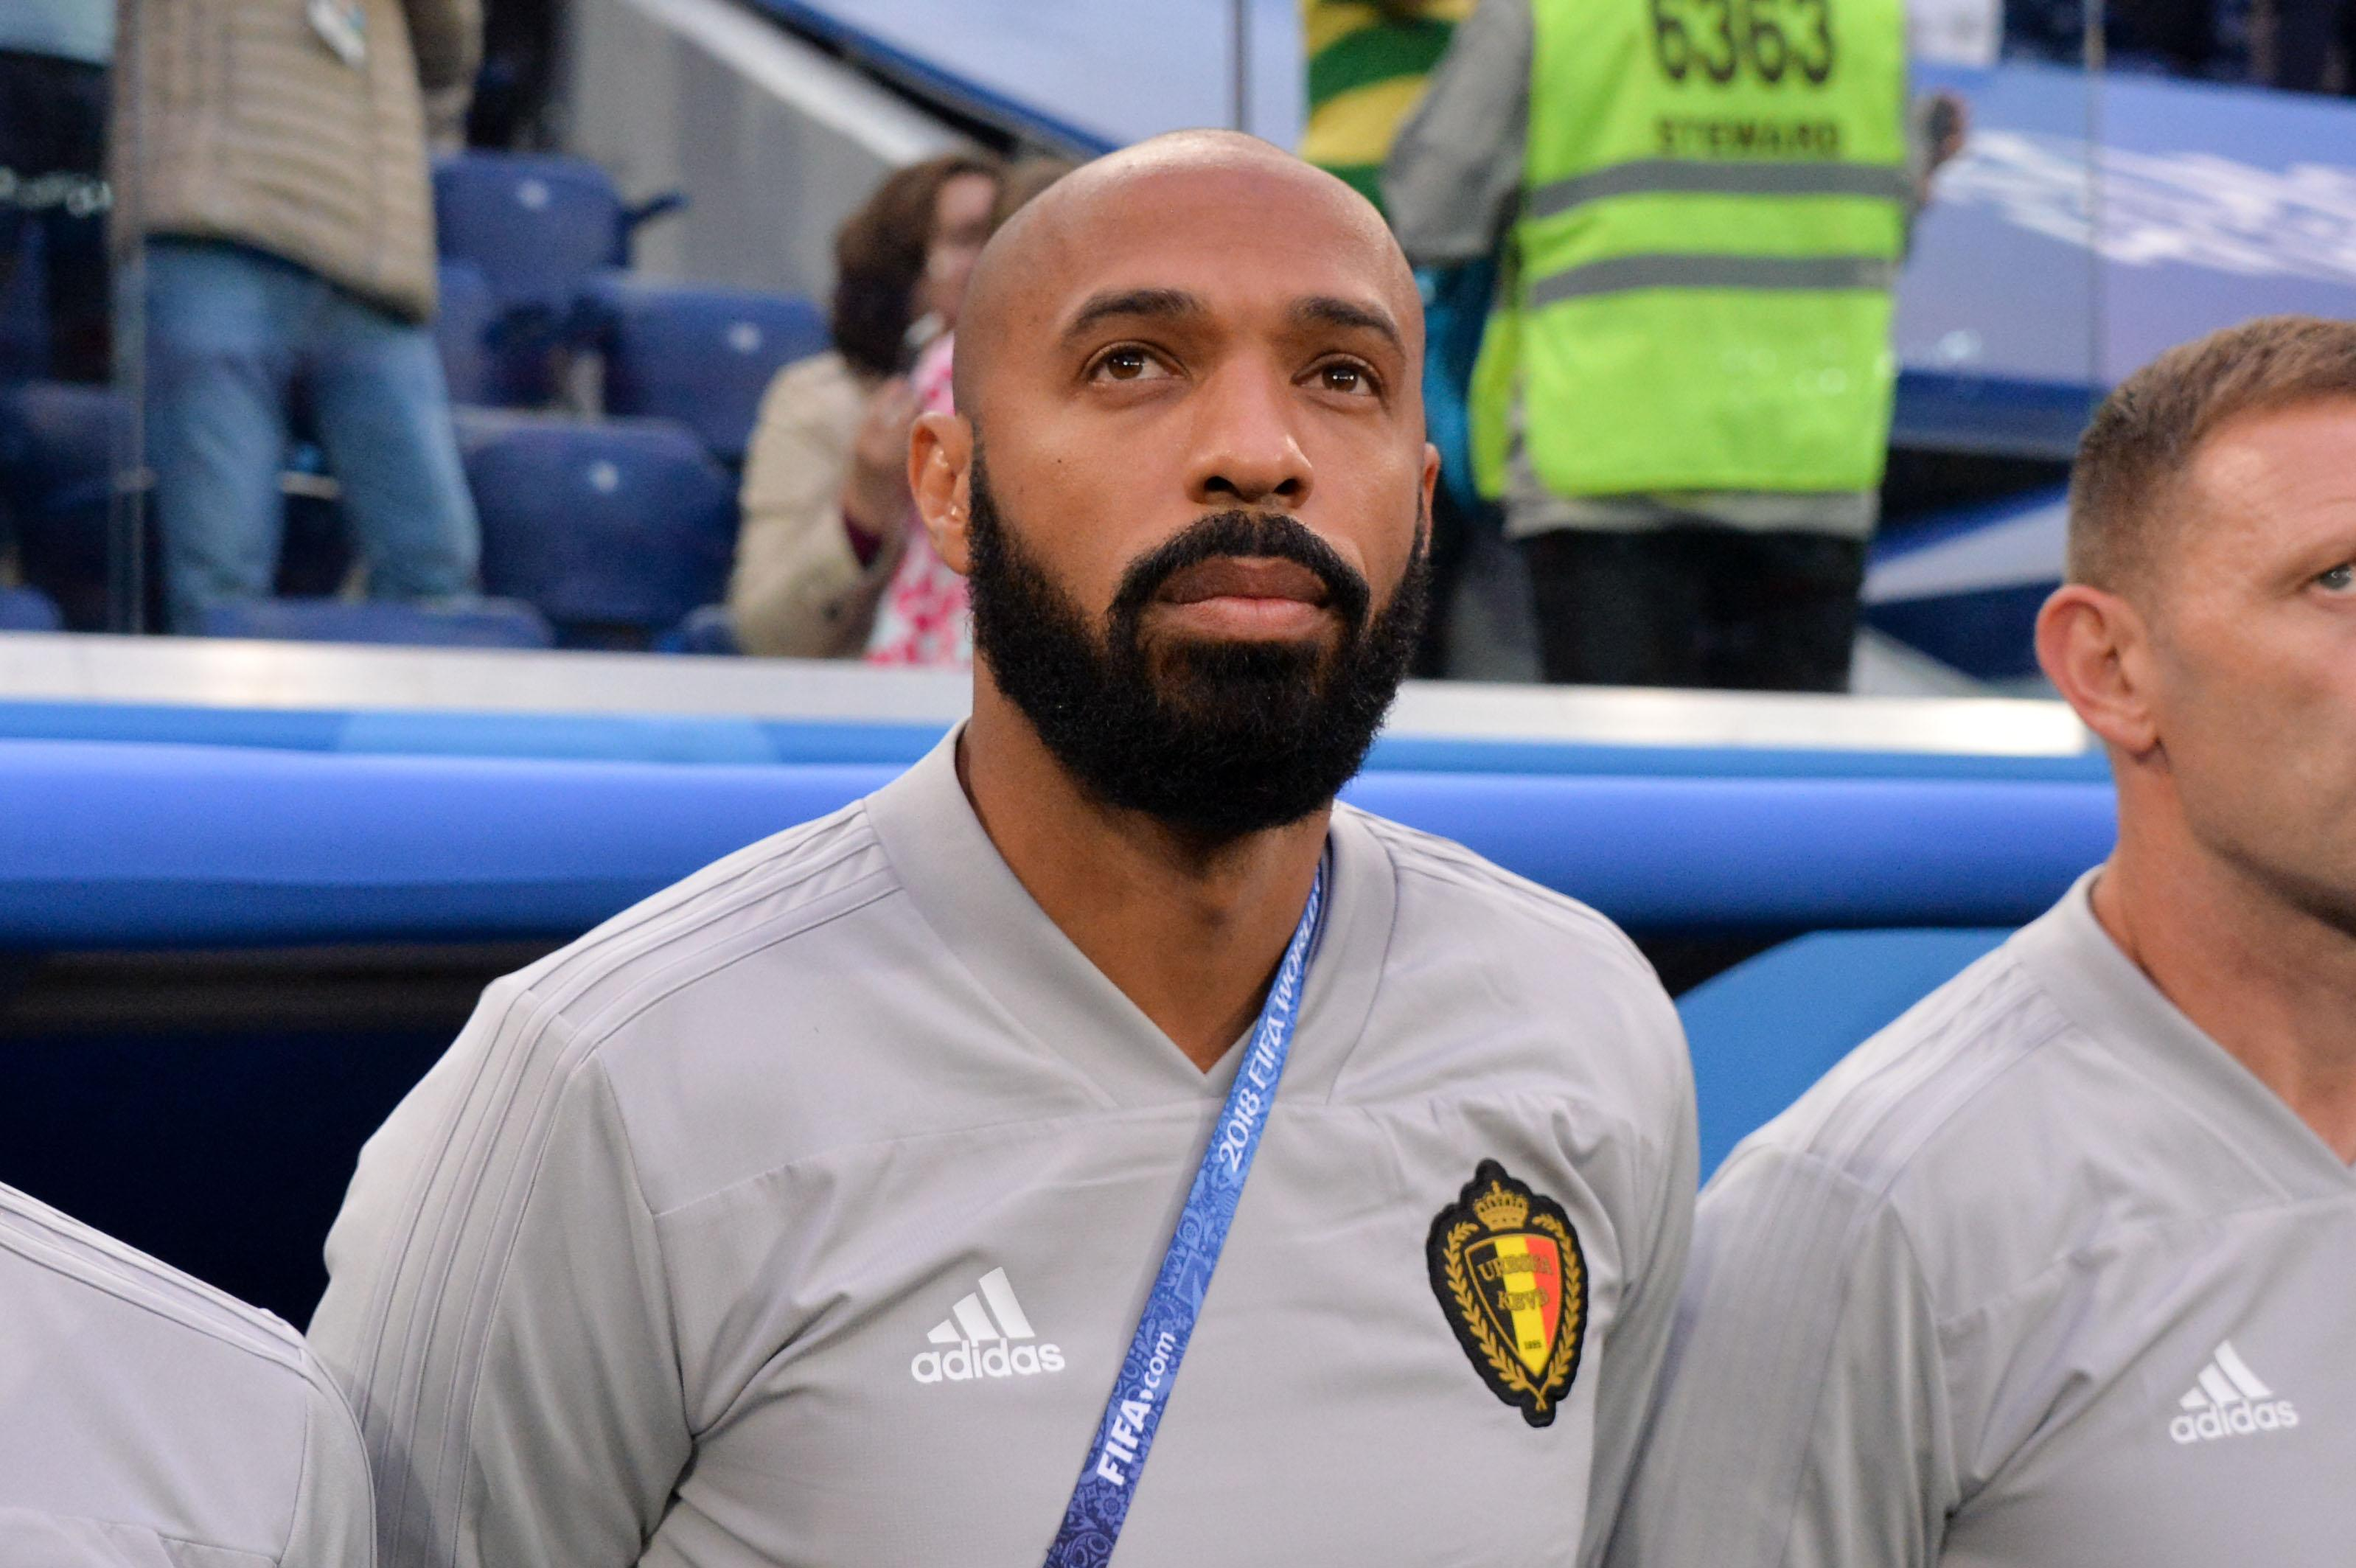 Henry quit his role as a Sky Sports pundit this week to focus on becoming a manager, and has since been heavily linked with Villa